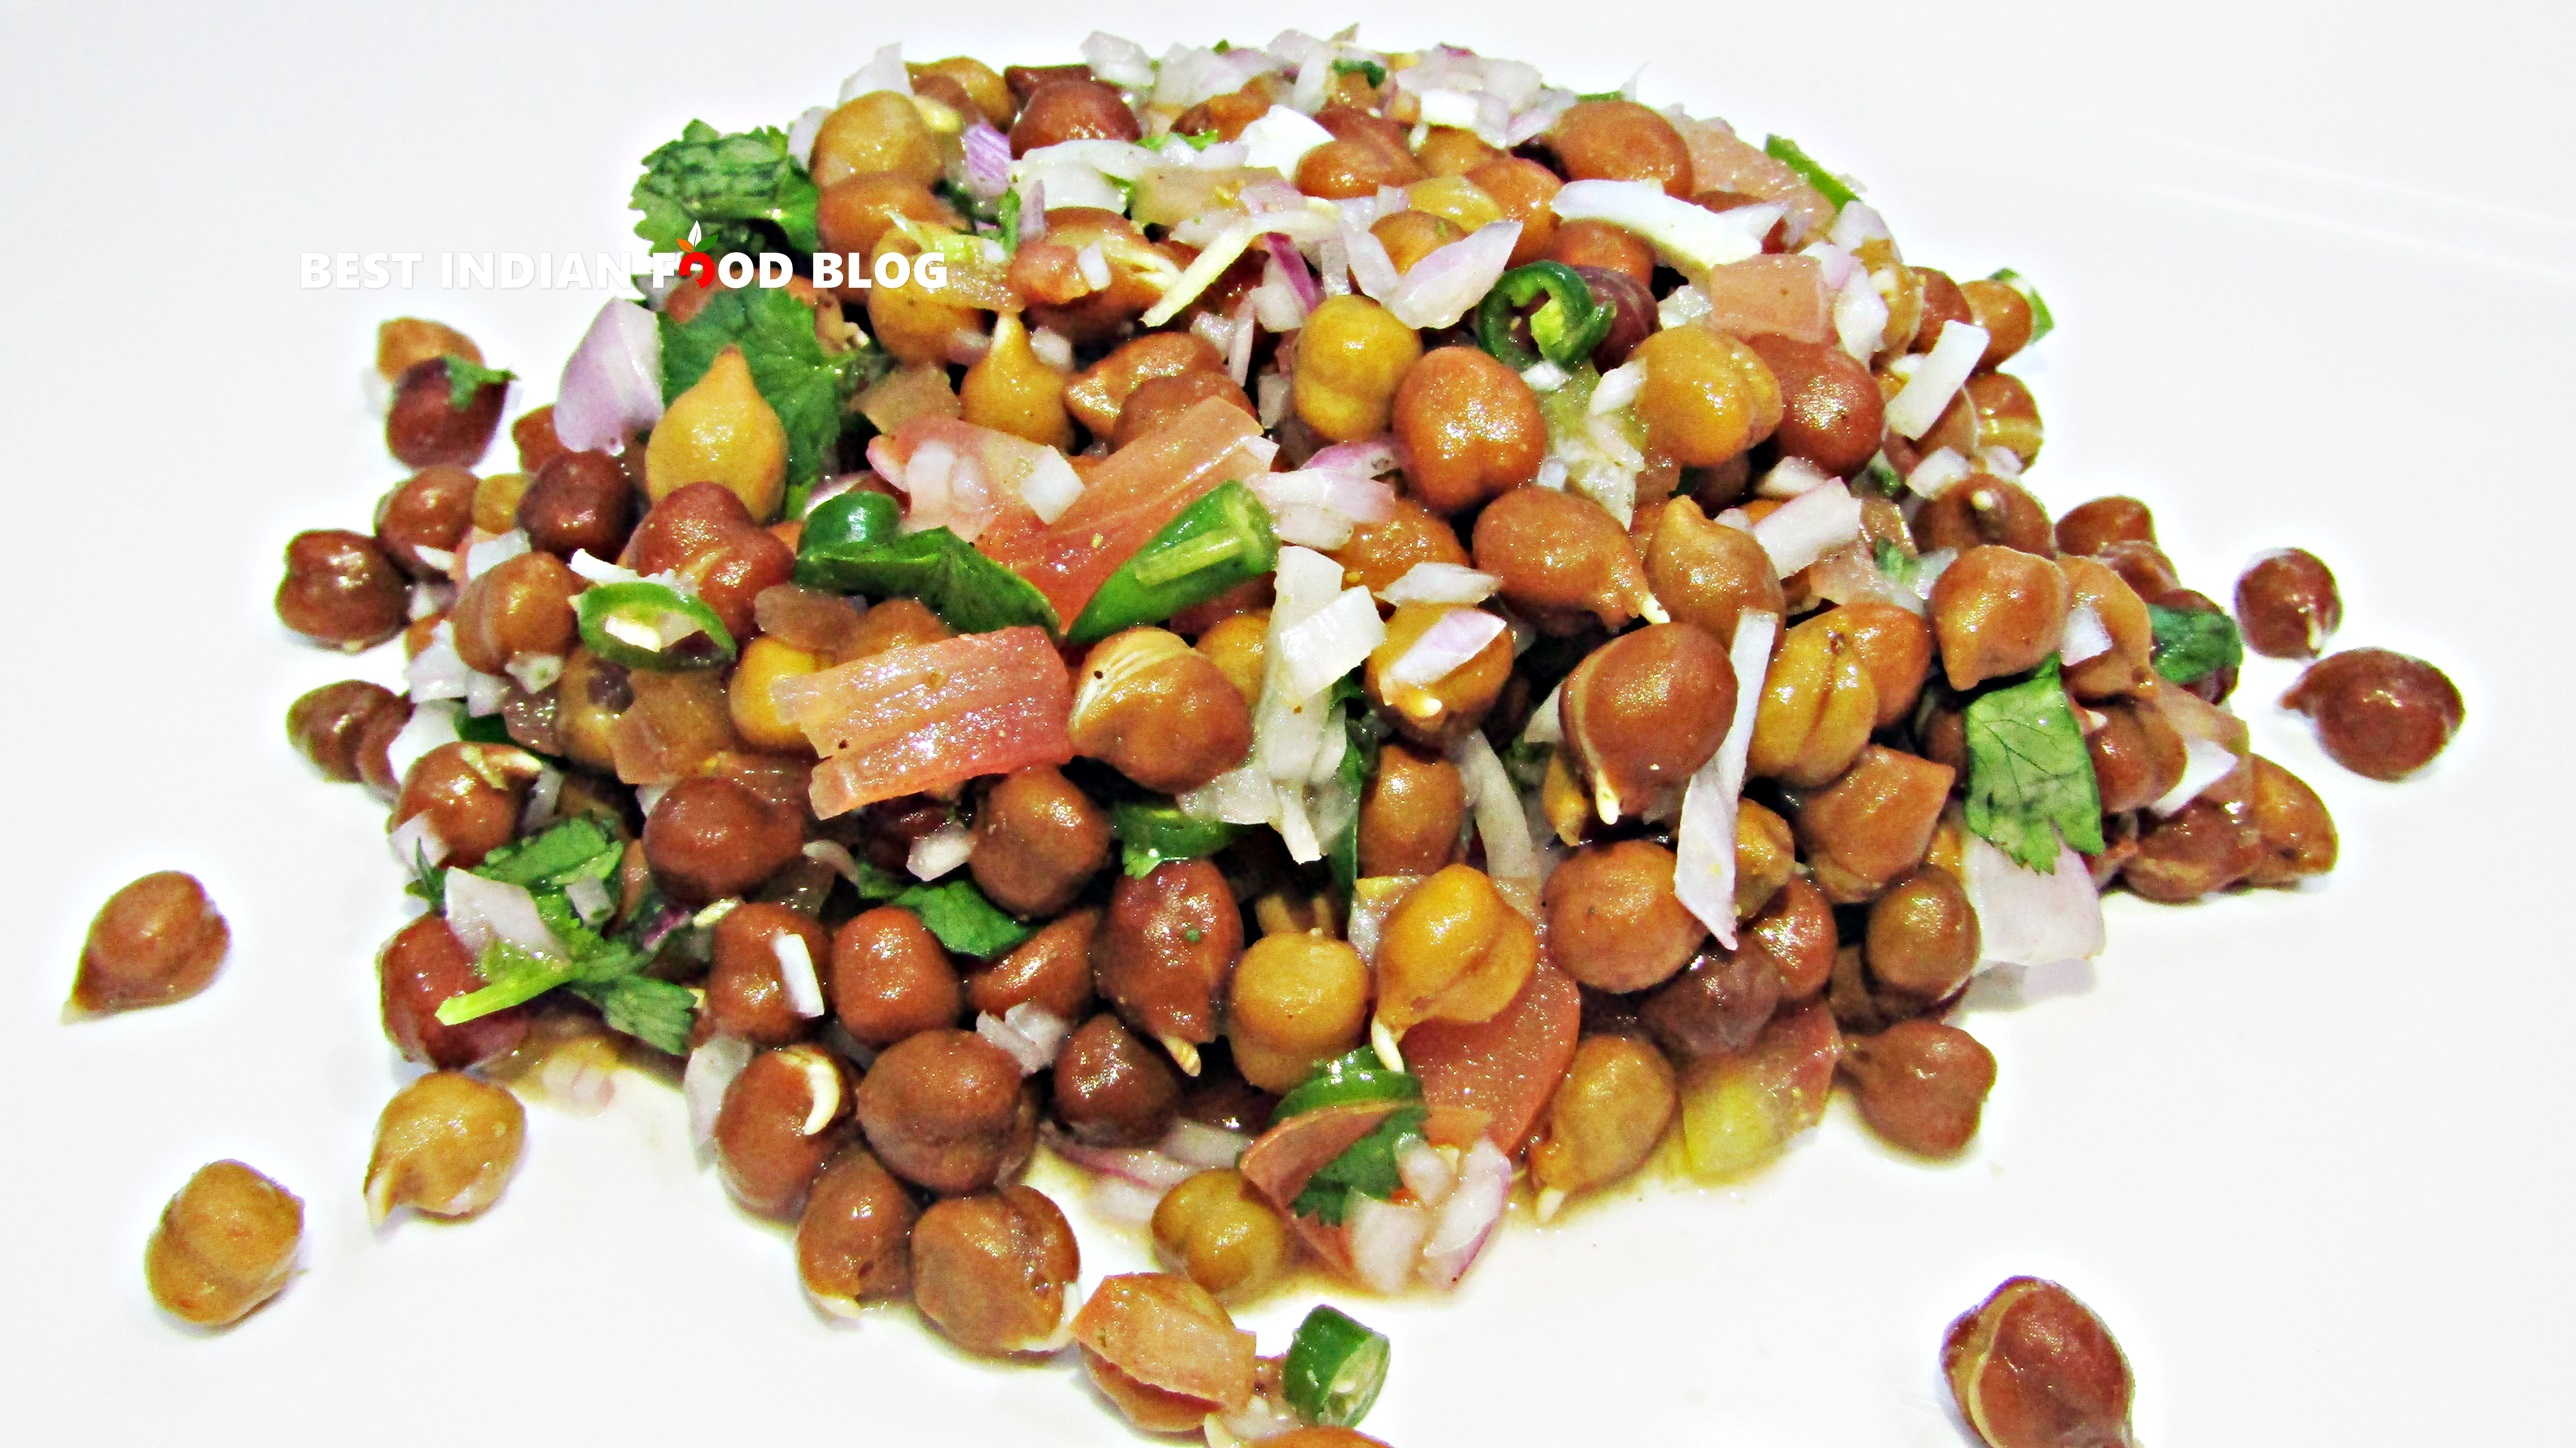 Chana Chat from Maharashtra, India | Best Indian Food Blog | Chickpea recipe